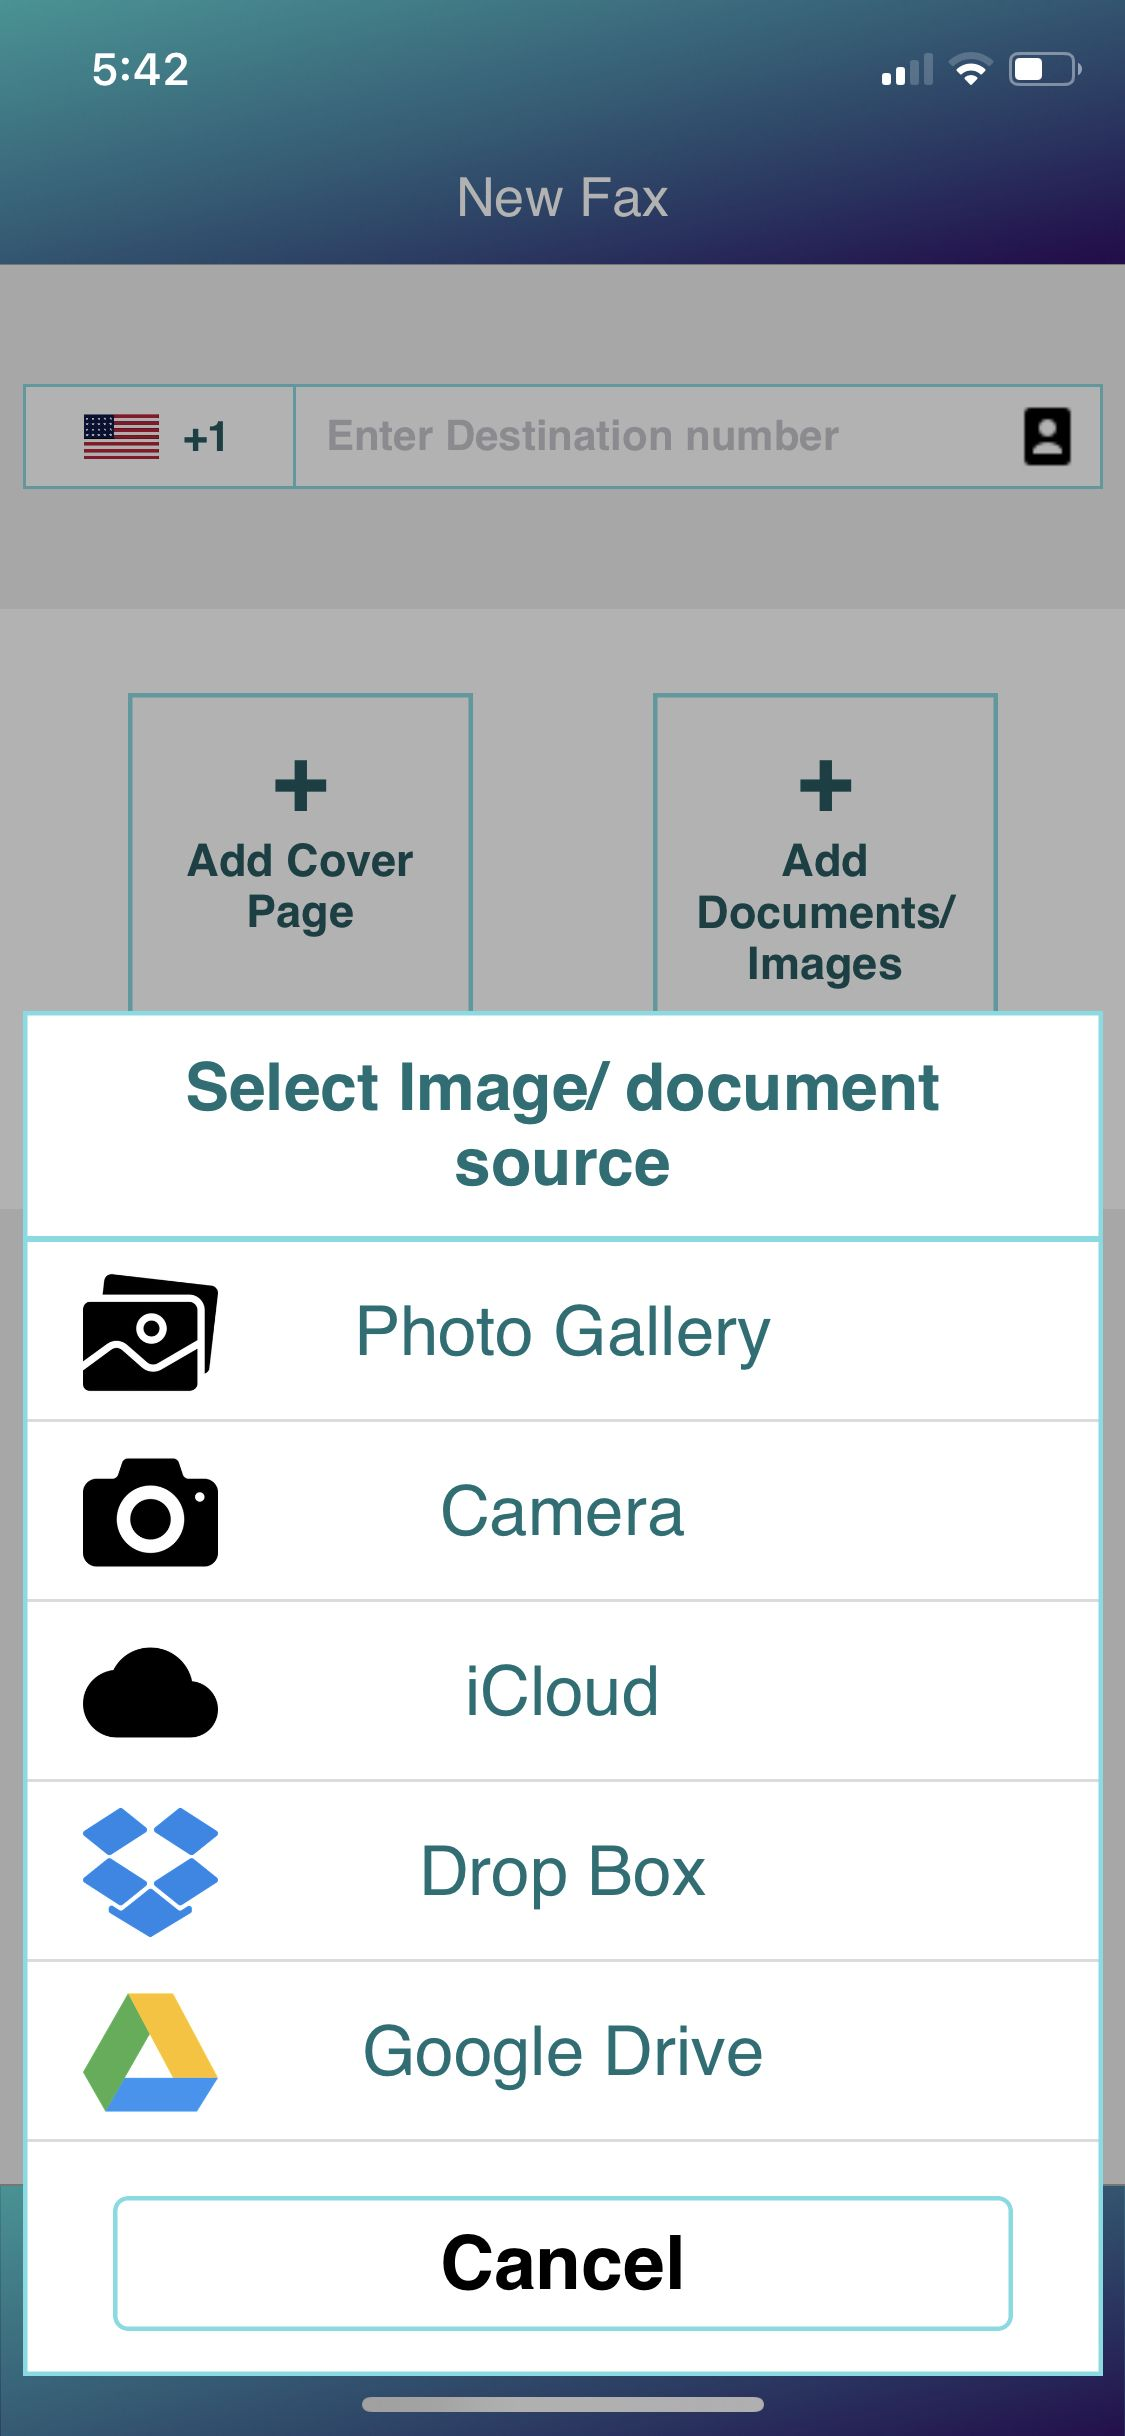 Fax & Fax App Gives you the feeling of a real mobile fax